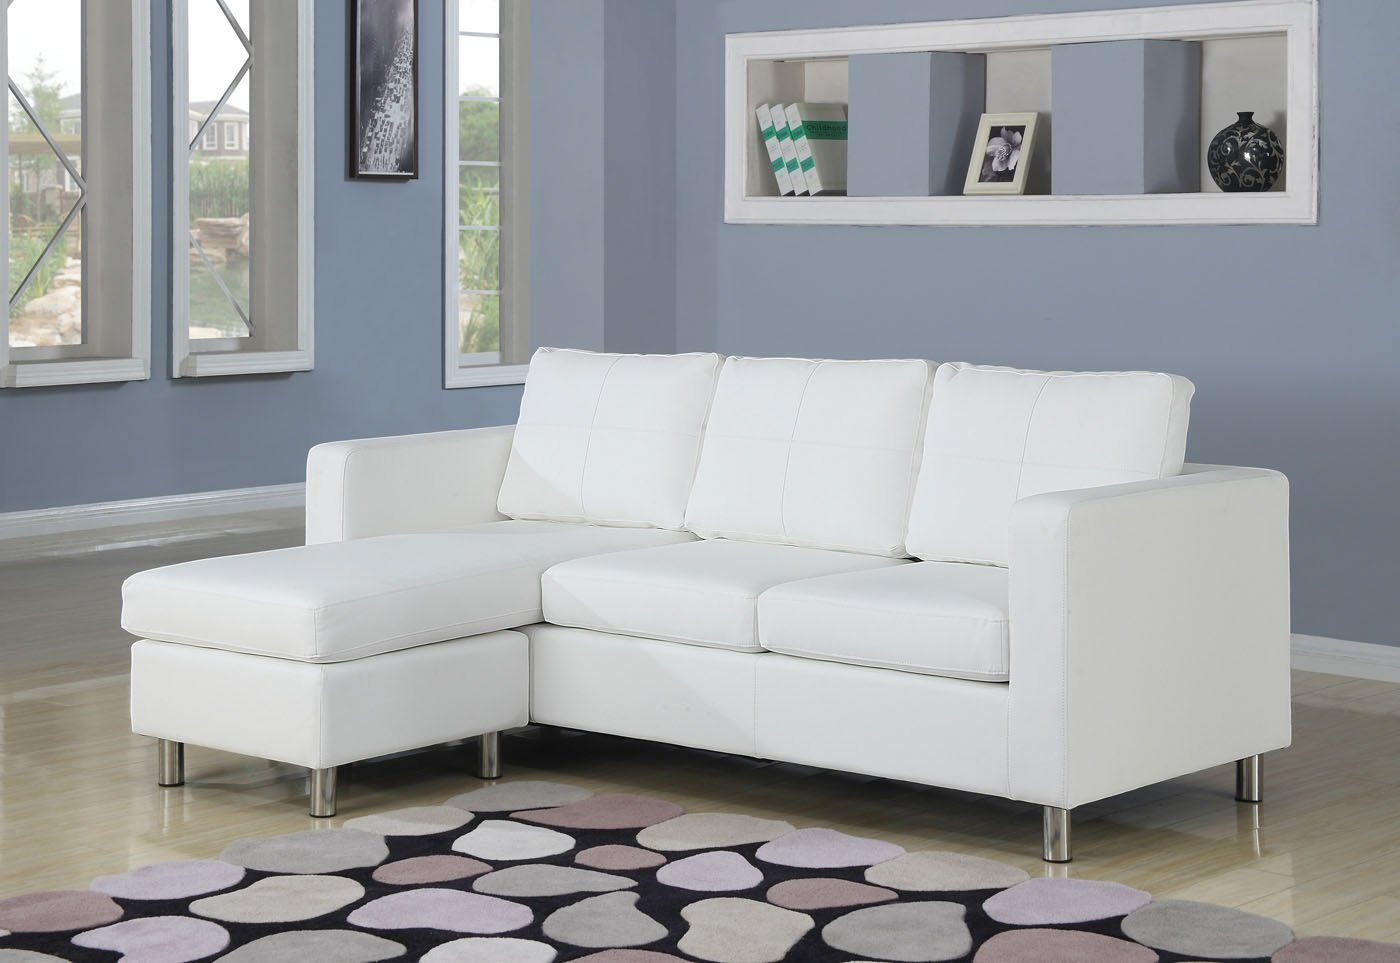 Picture of: Small Sectional Sofa With Chaise